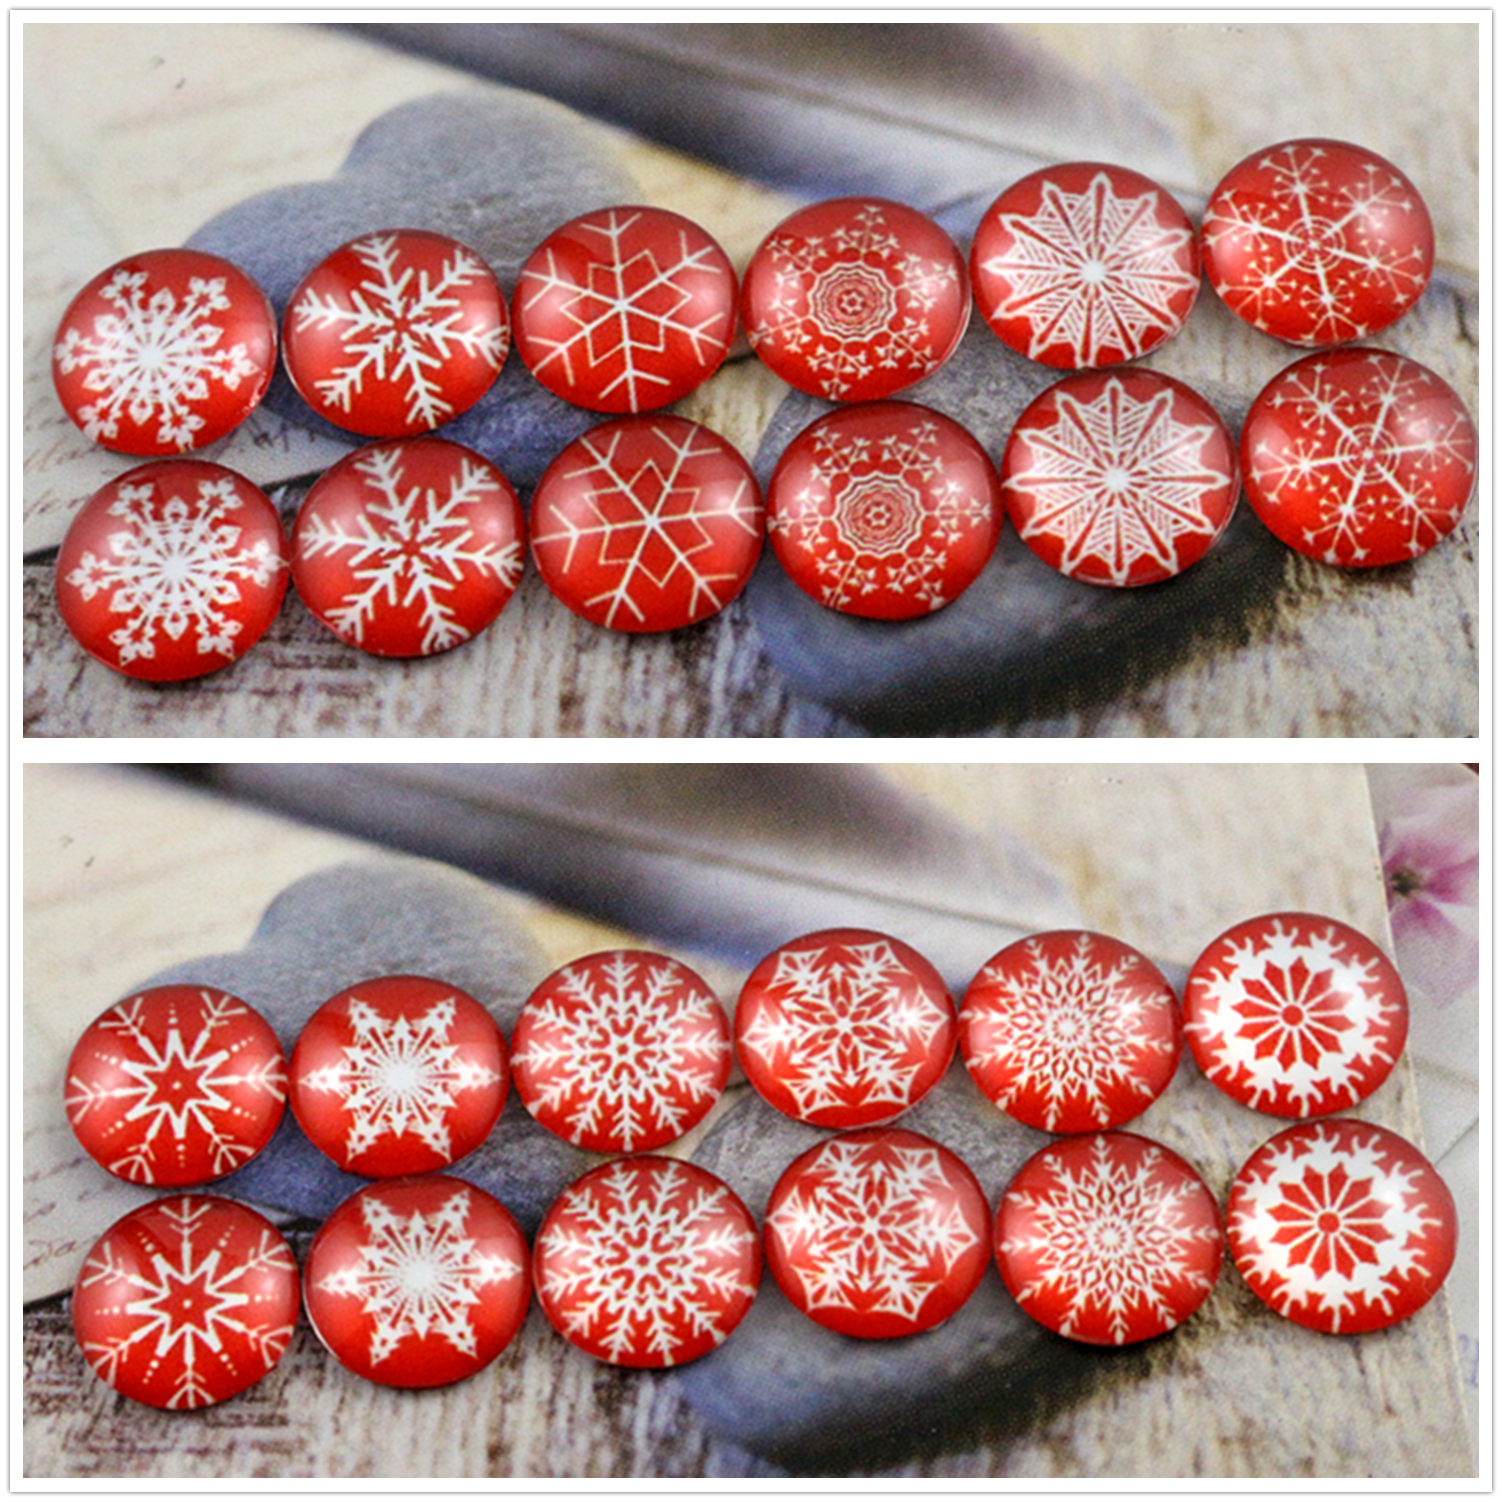 12pcs (One Set) Two Style 12mm Red background snowflakes Handmade Glass Cabochons Pattern Domed Jewelry Accessories Supplies 12pcs lot one set two style 12mm blue snowflakes handmade glass cabochons pattern domed jewelry accessories supplies